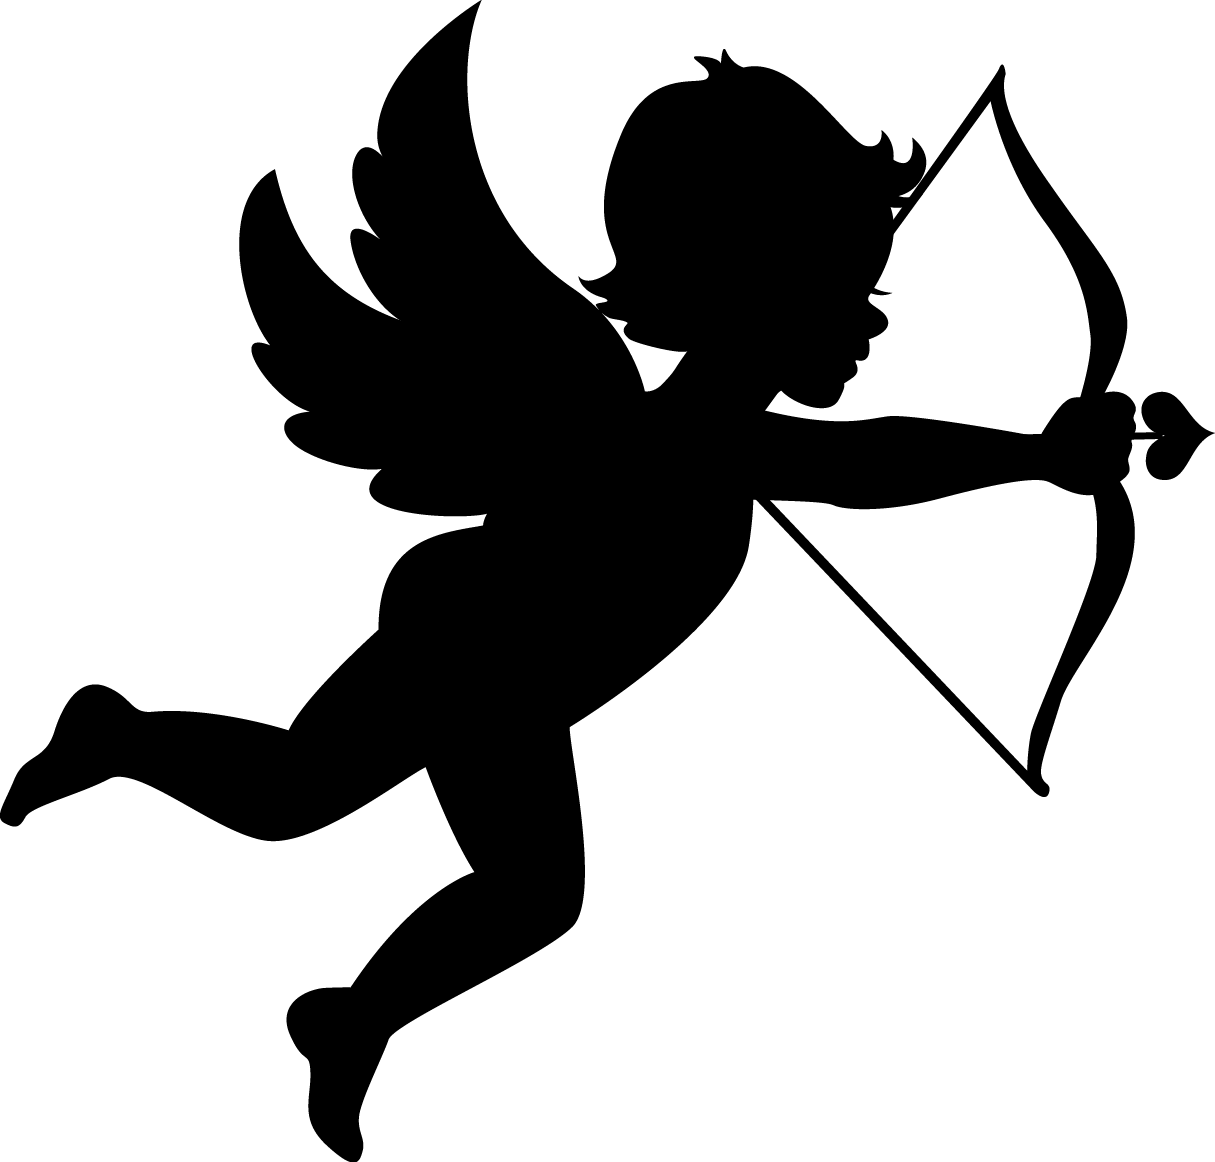 jpg black and white library Cupid transparent. Png images free download